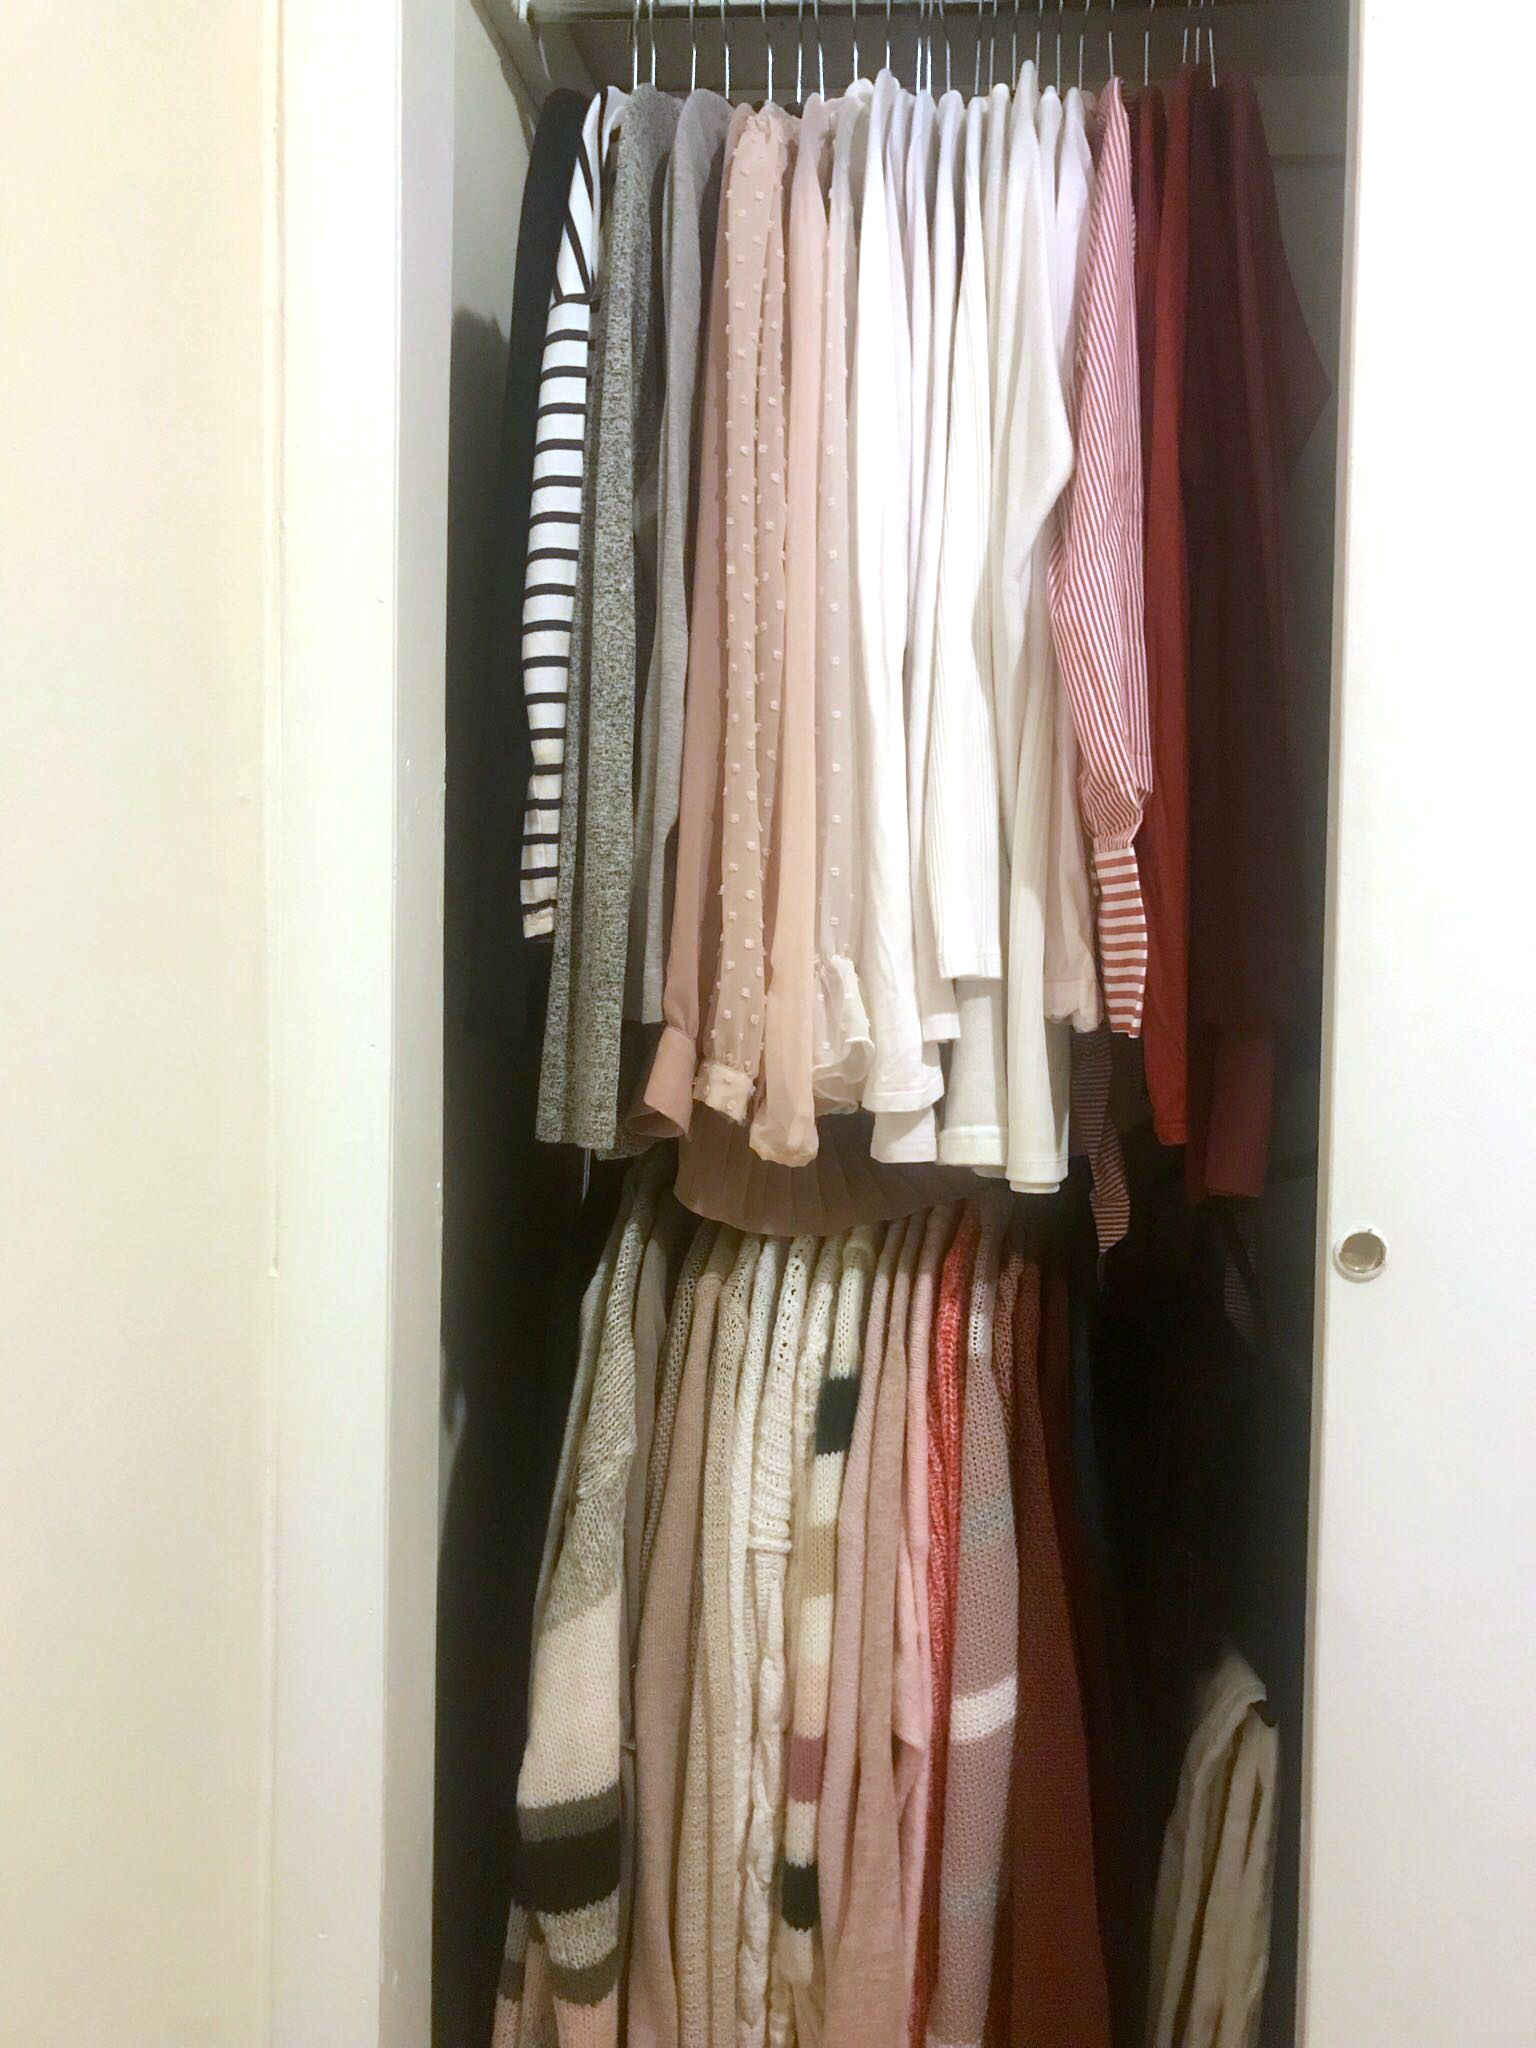 Bed Bath Beyond Sells A 15 Double Hanging Rod That Doubled The Size Of My Tiny Nyc Closet